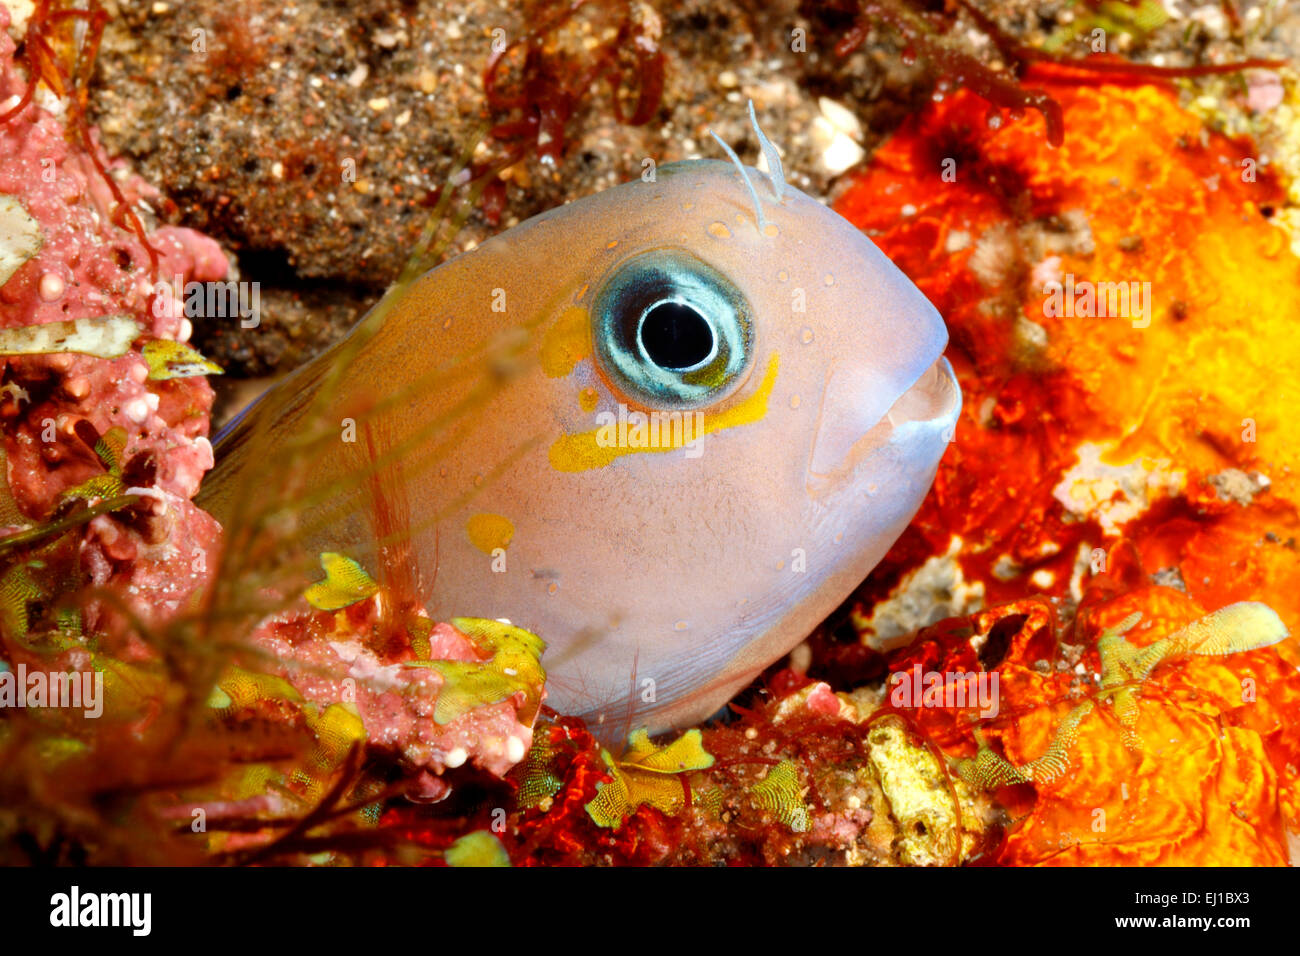 Midas Blenny, Golden Blenny or Lyretail Blenny, Ecsenius midas, peering out of its home in a hole in the reef. Tulamben, - Stock Image